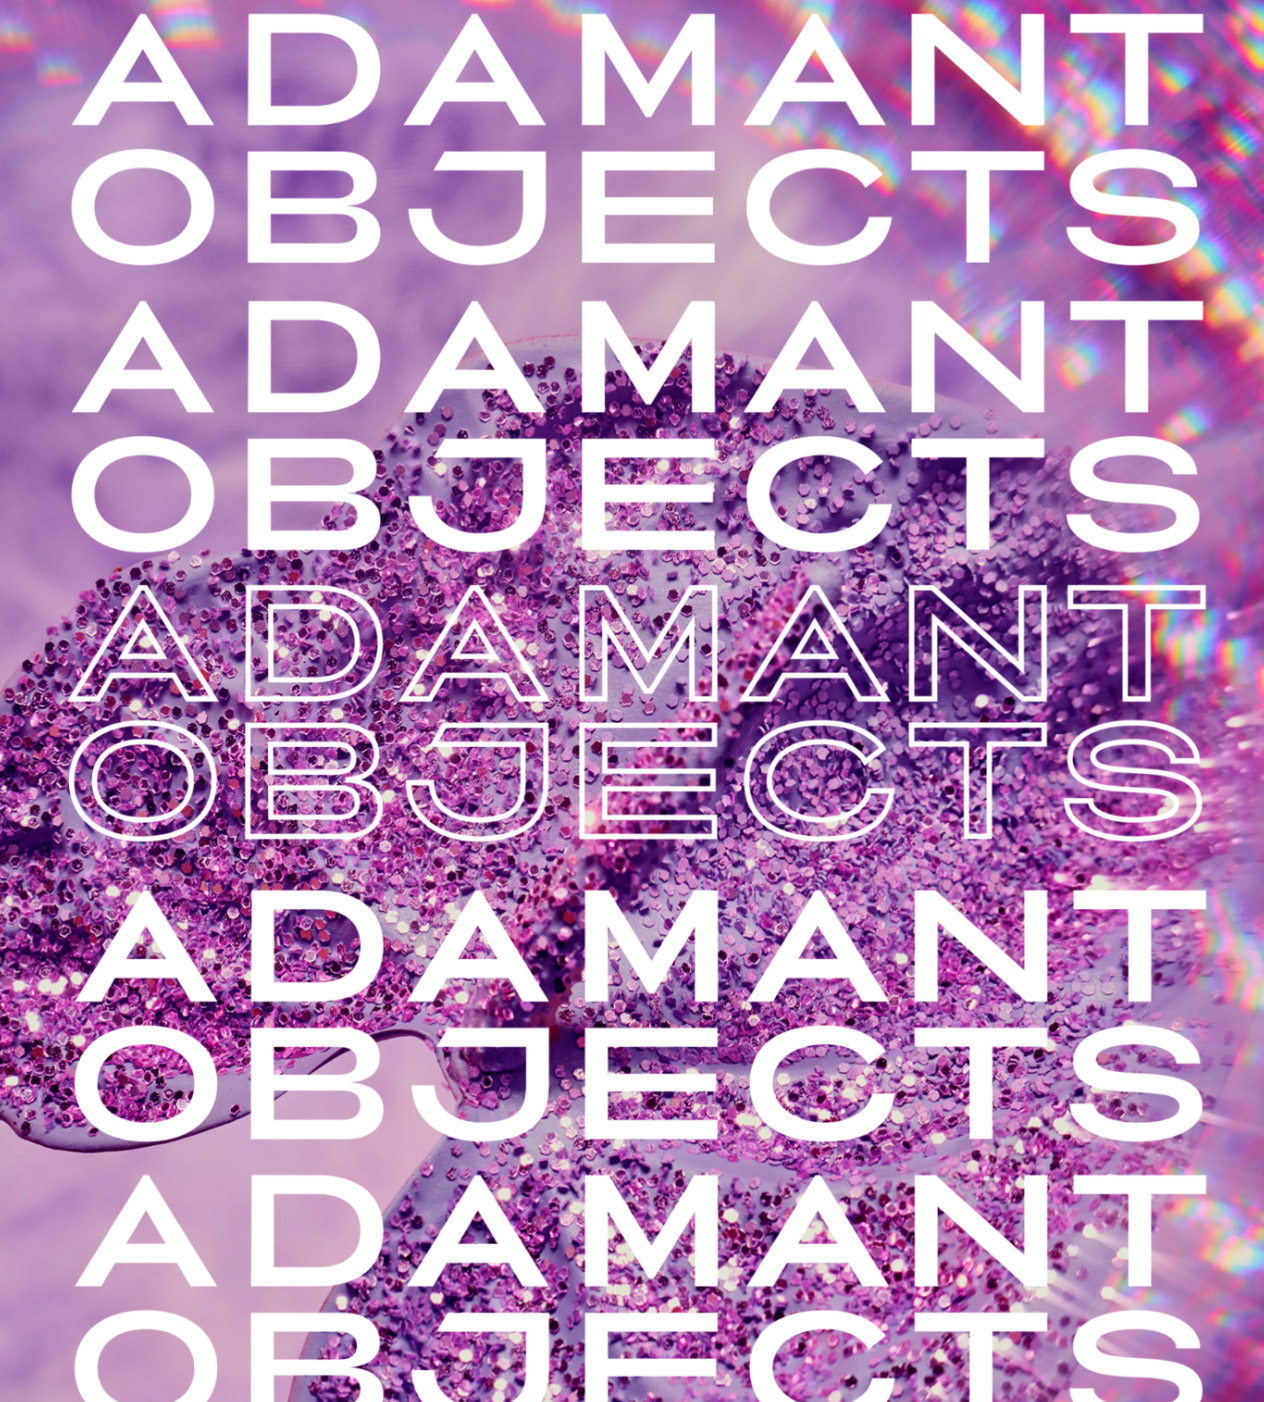 adamant objects